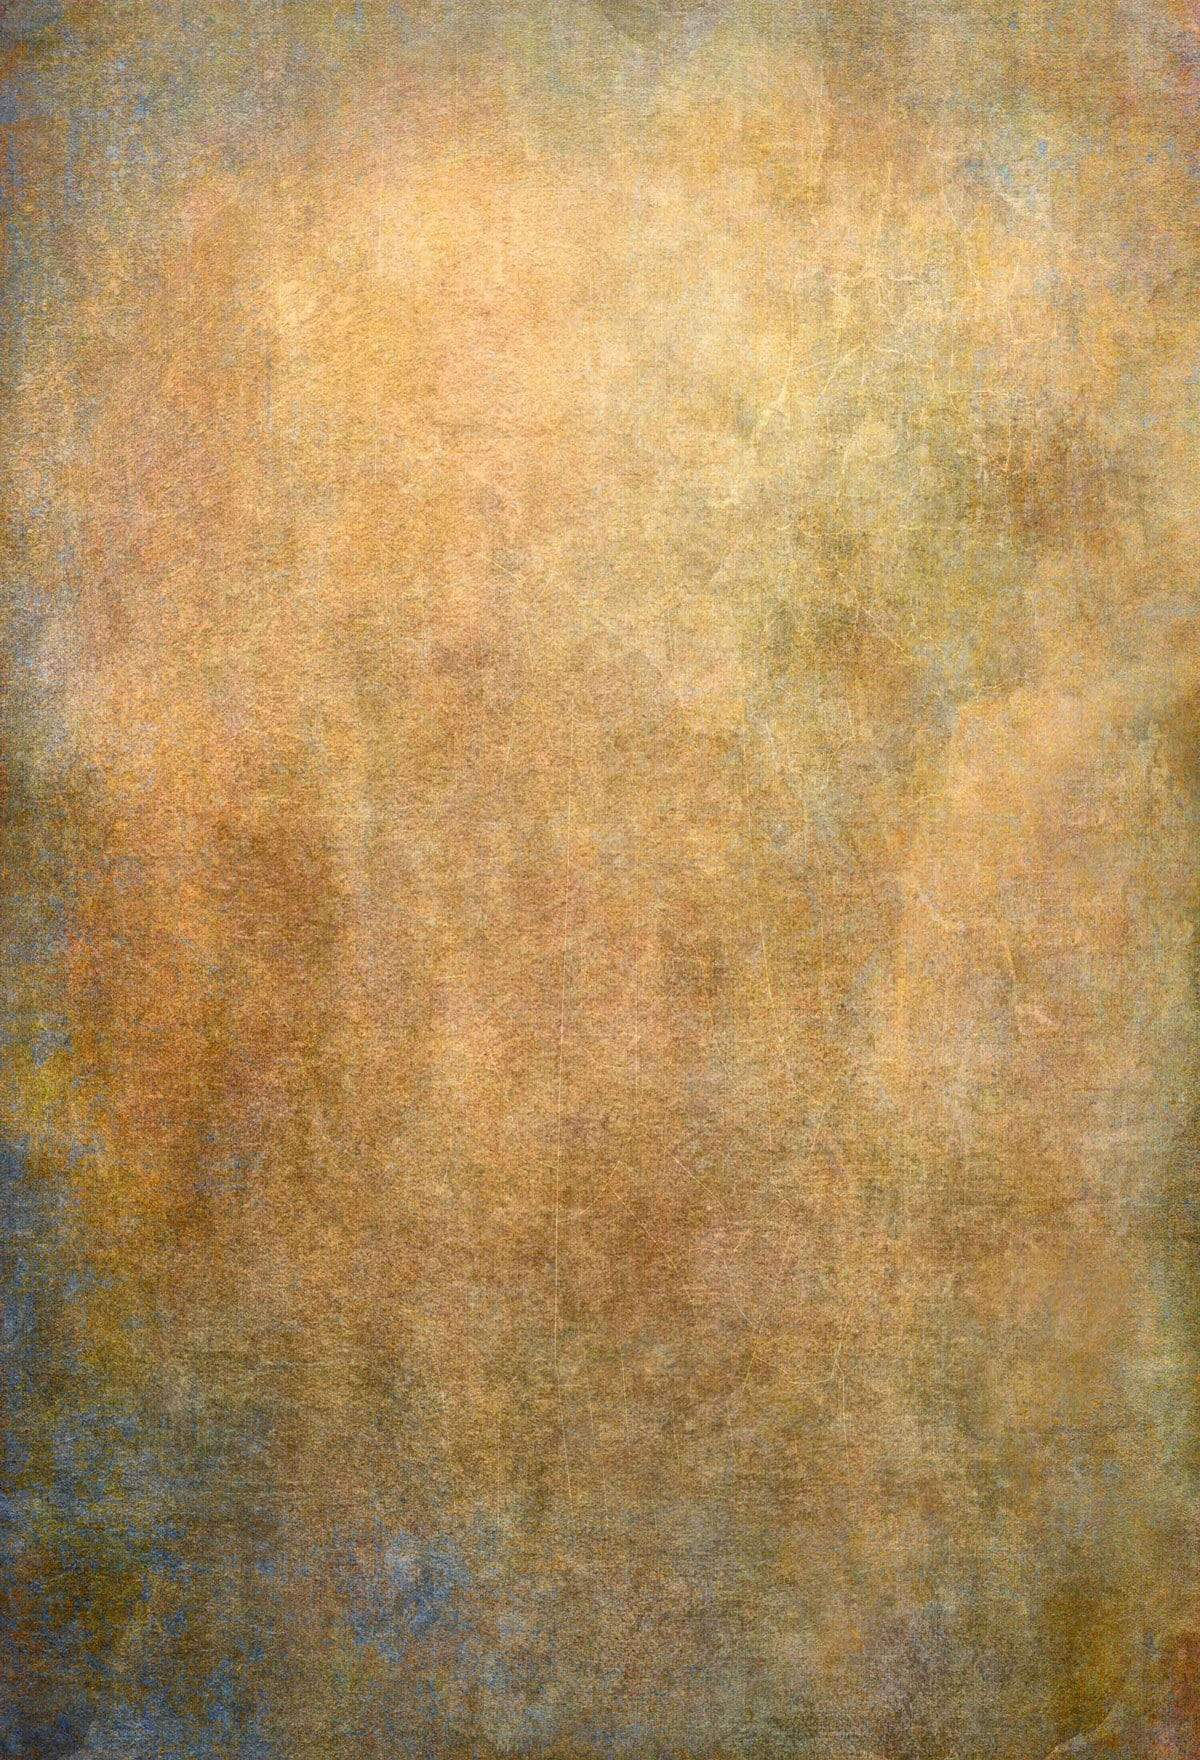 Load image into Gallery viewer, Katebackdrop£ºKate Abstract Distress Dark Suntan Brown Backdrop